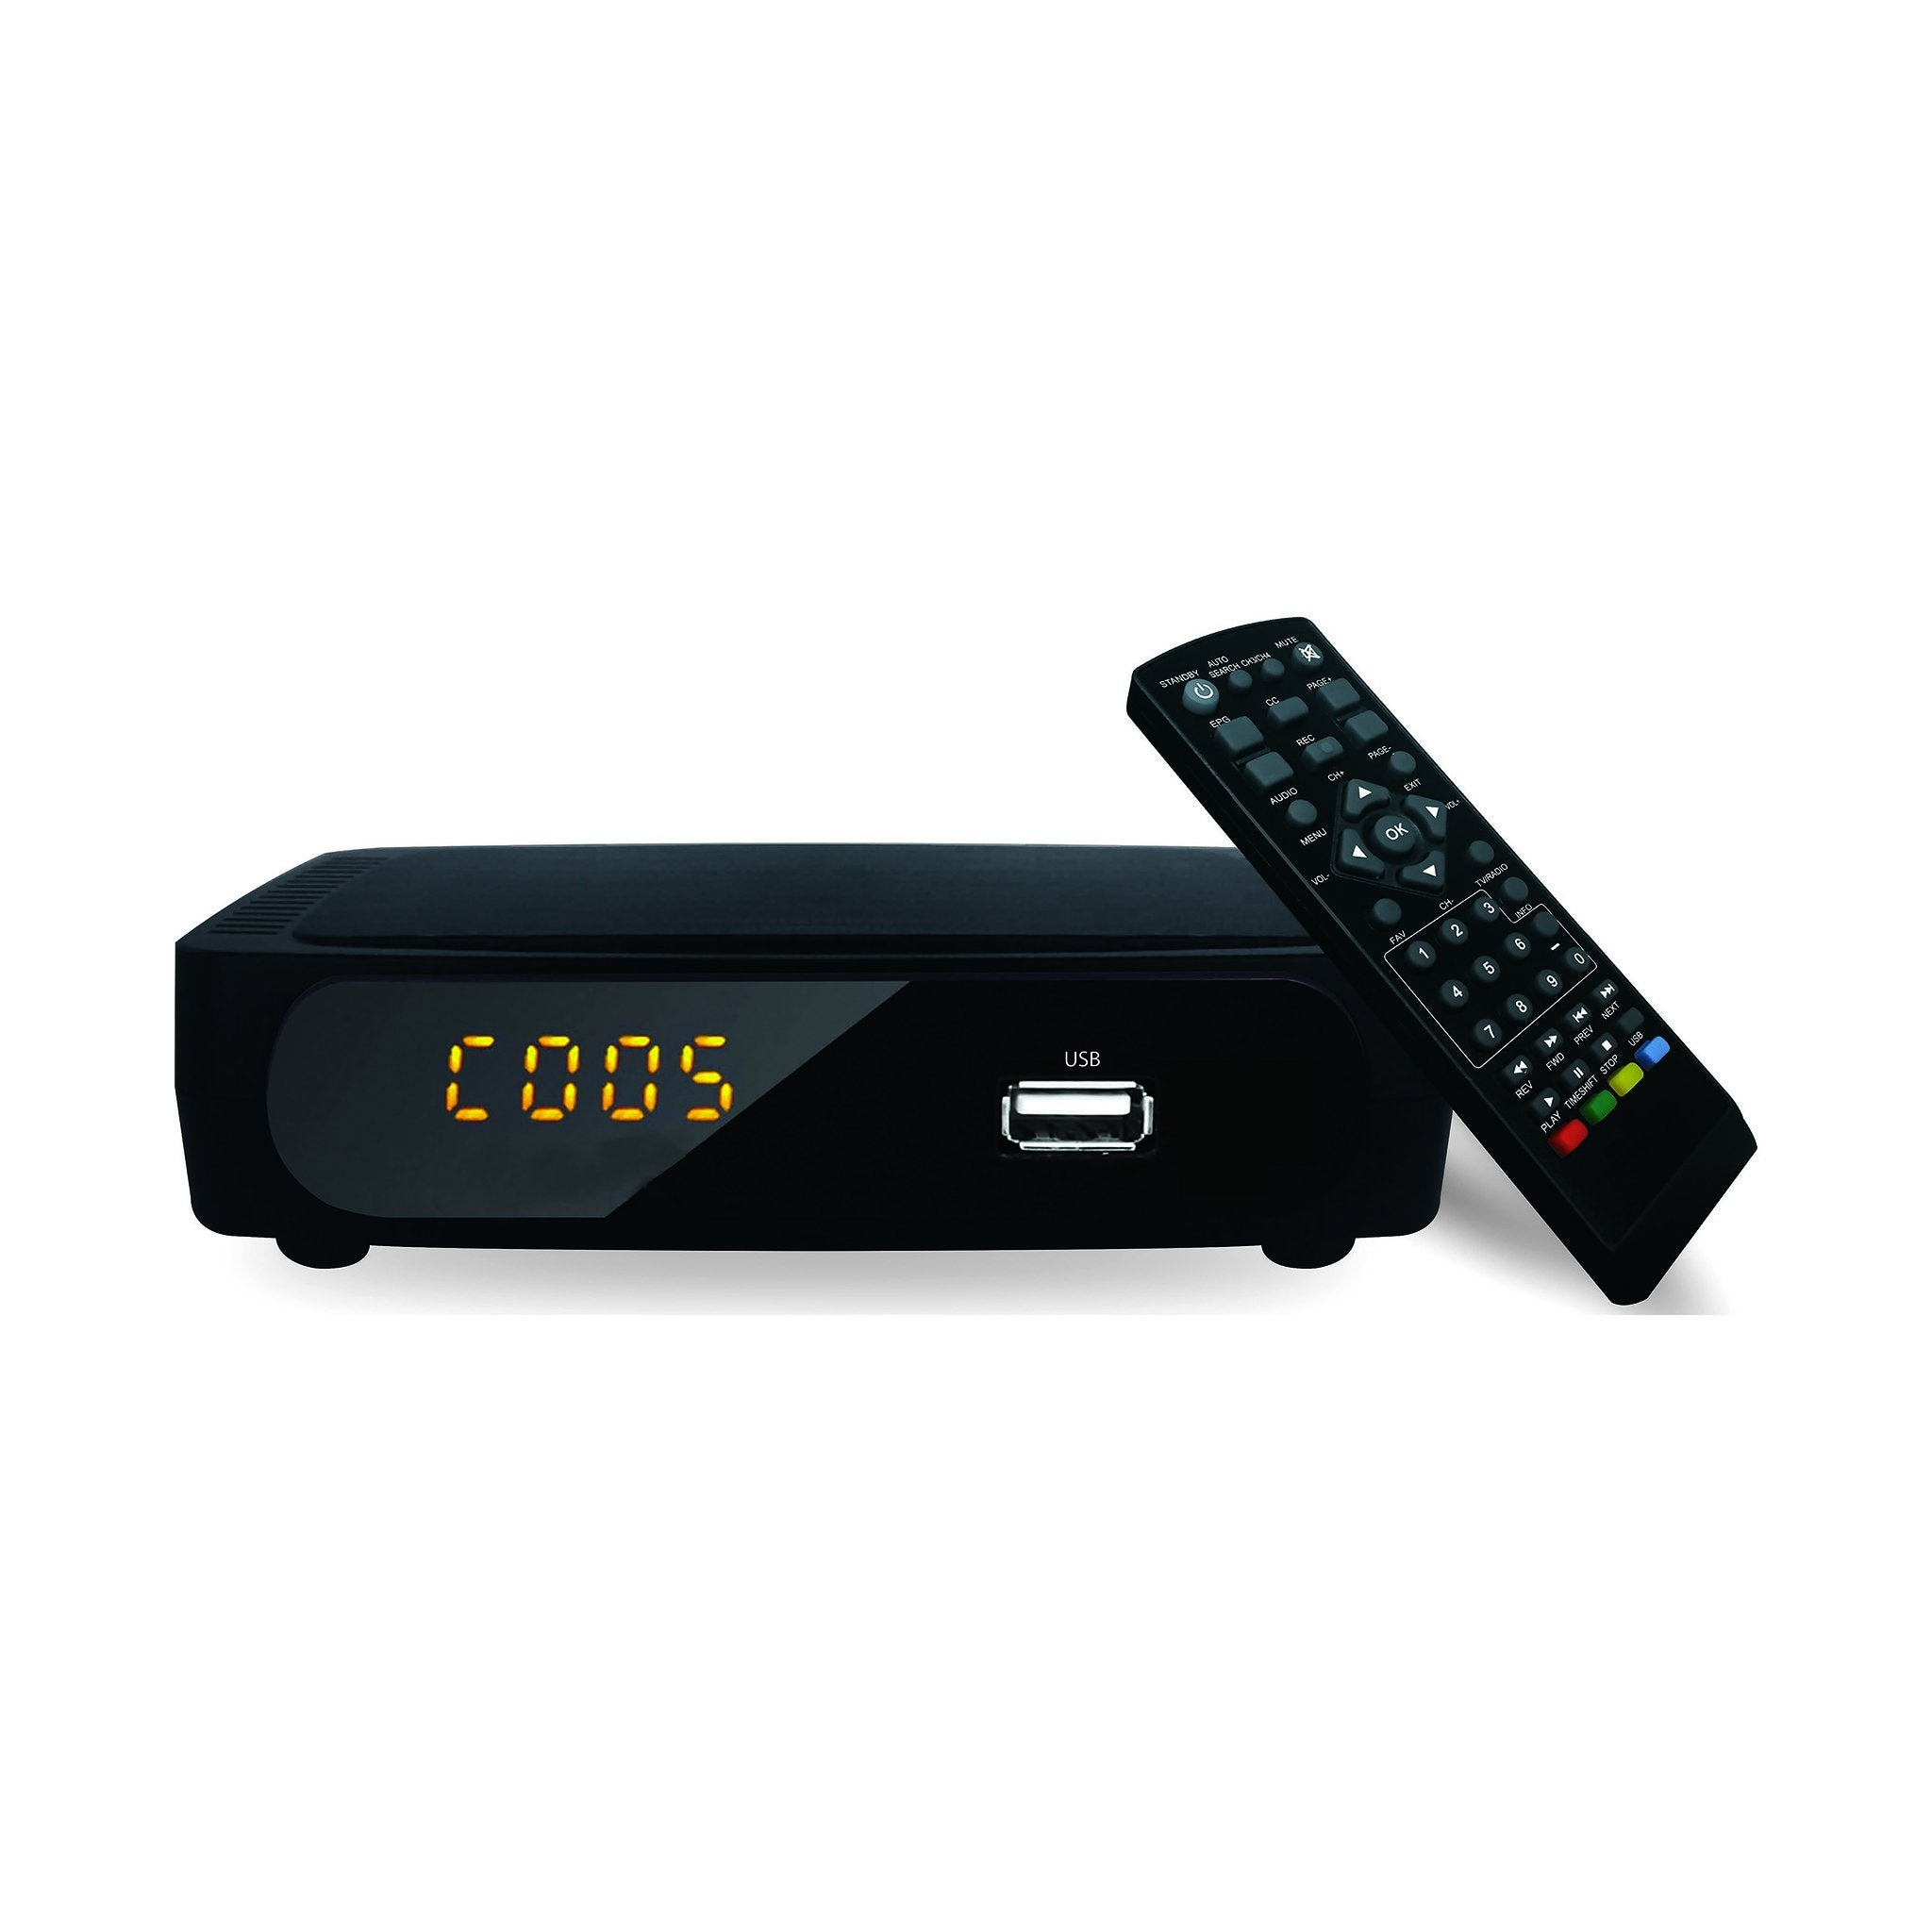 TV DIGITAL CONVERTER WITH REMOTE